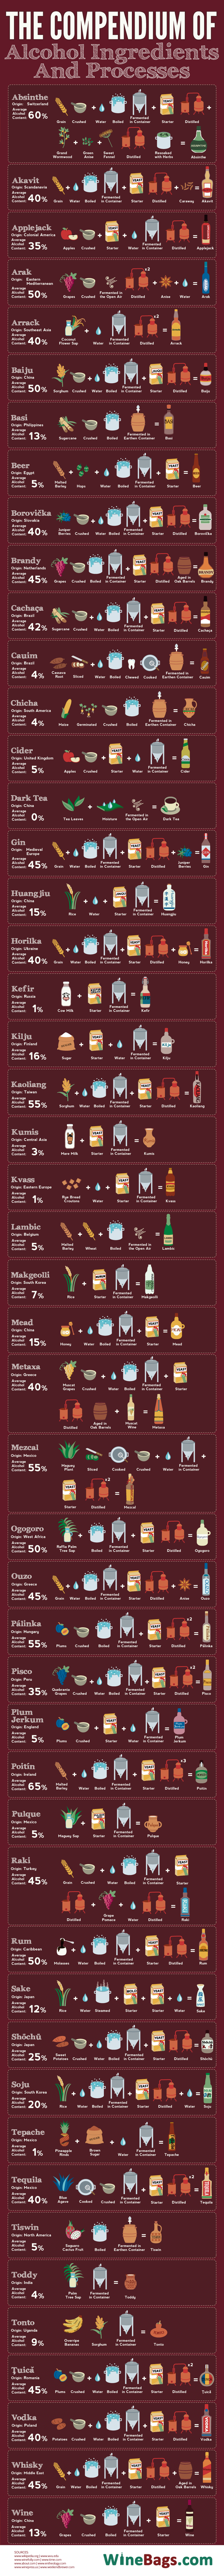 Alcoholingredients-infographic